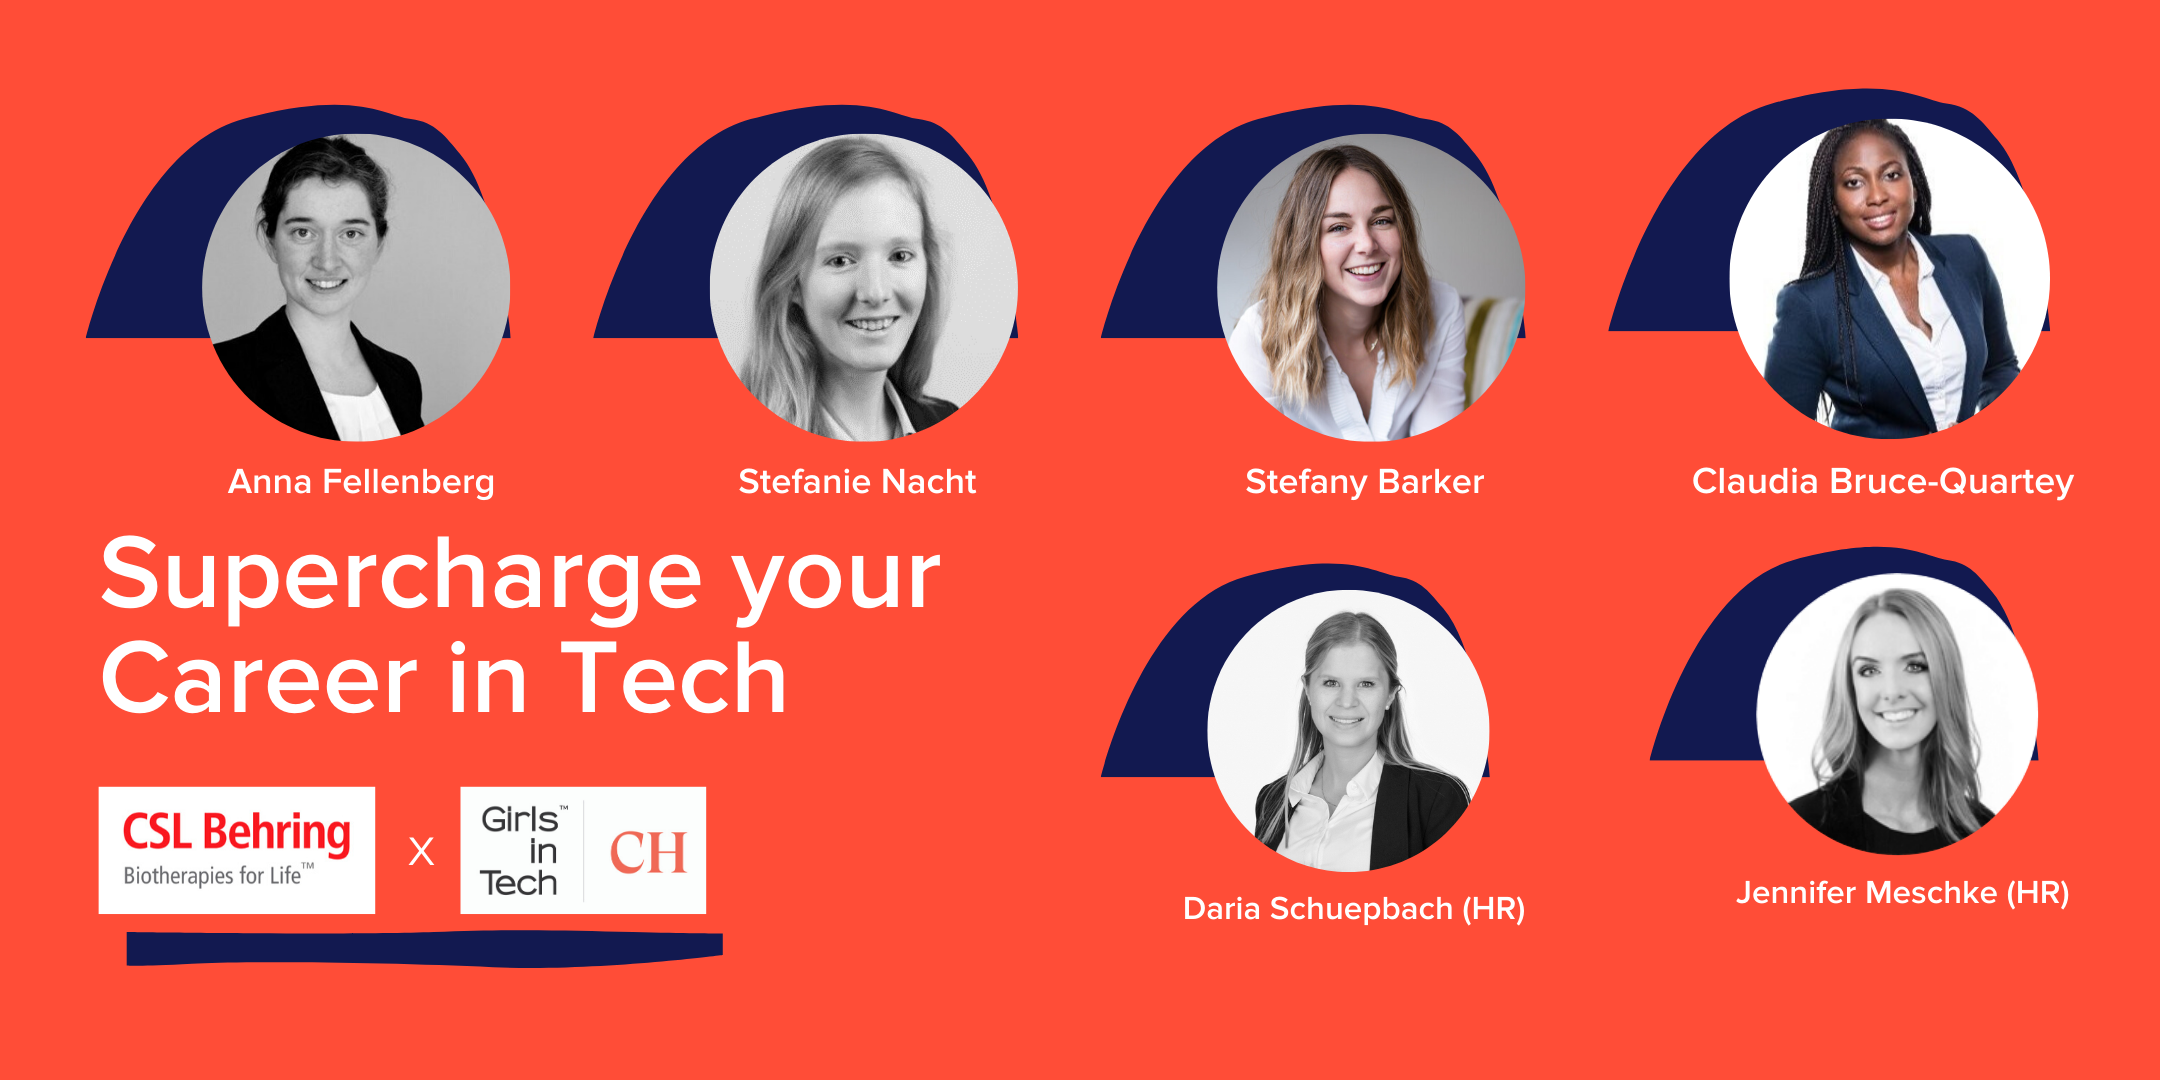 4 amazing women in tech